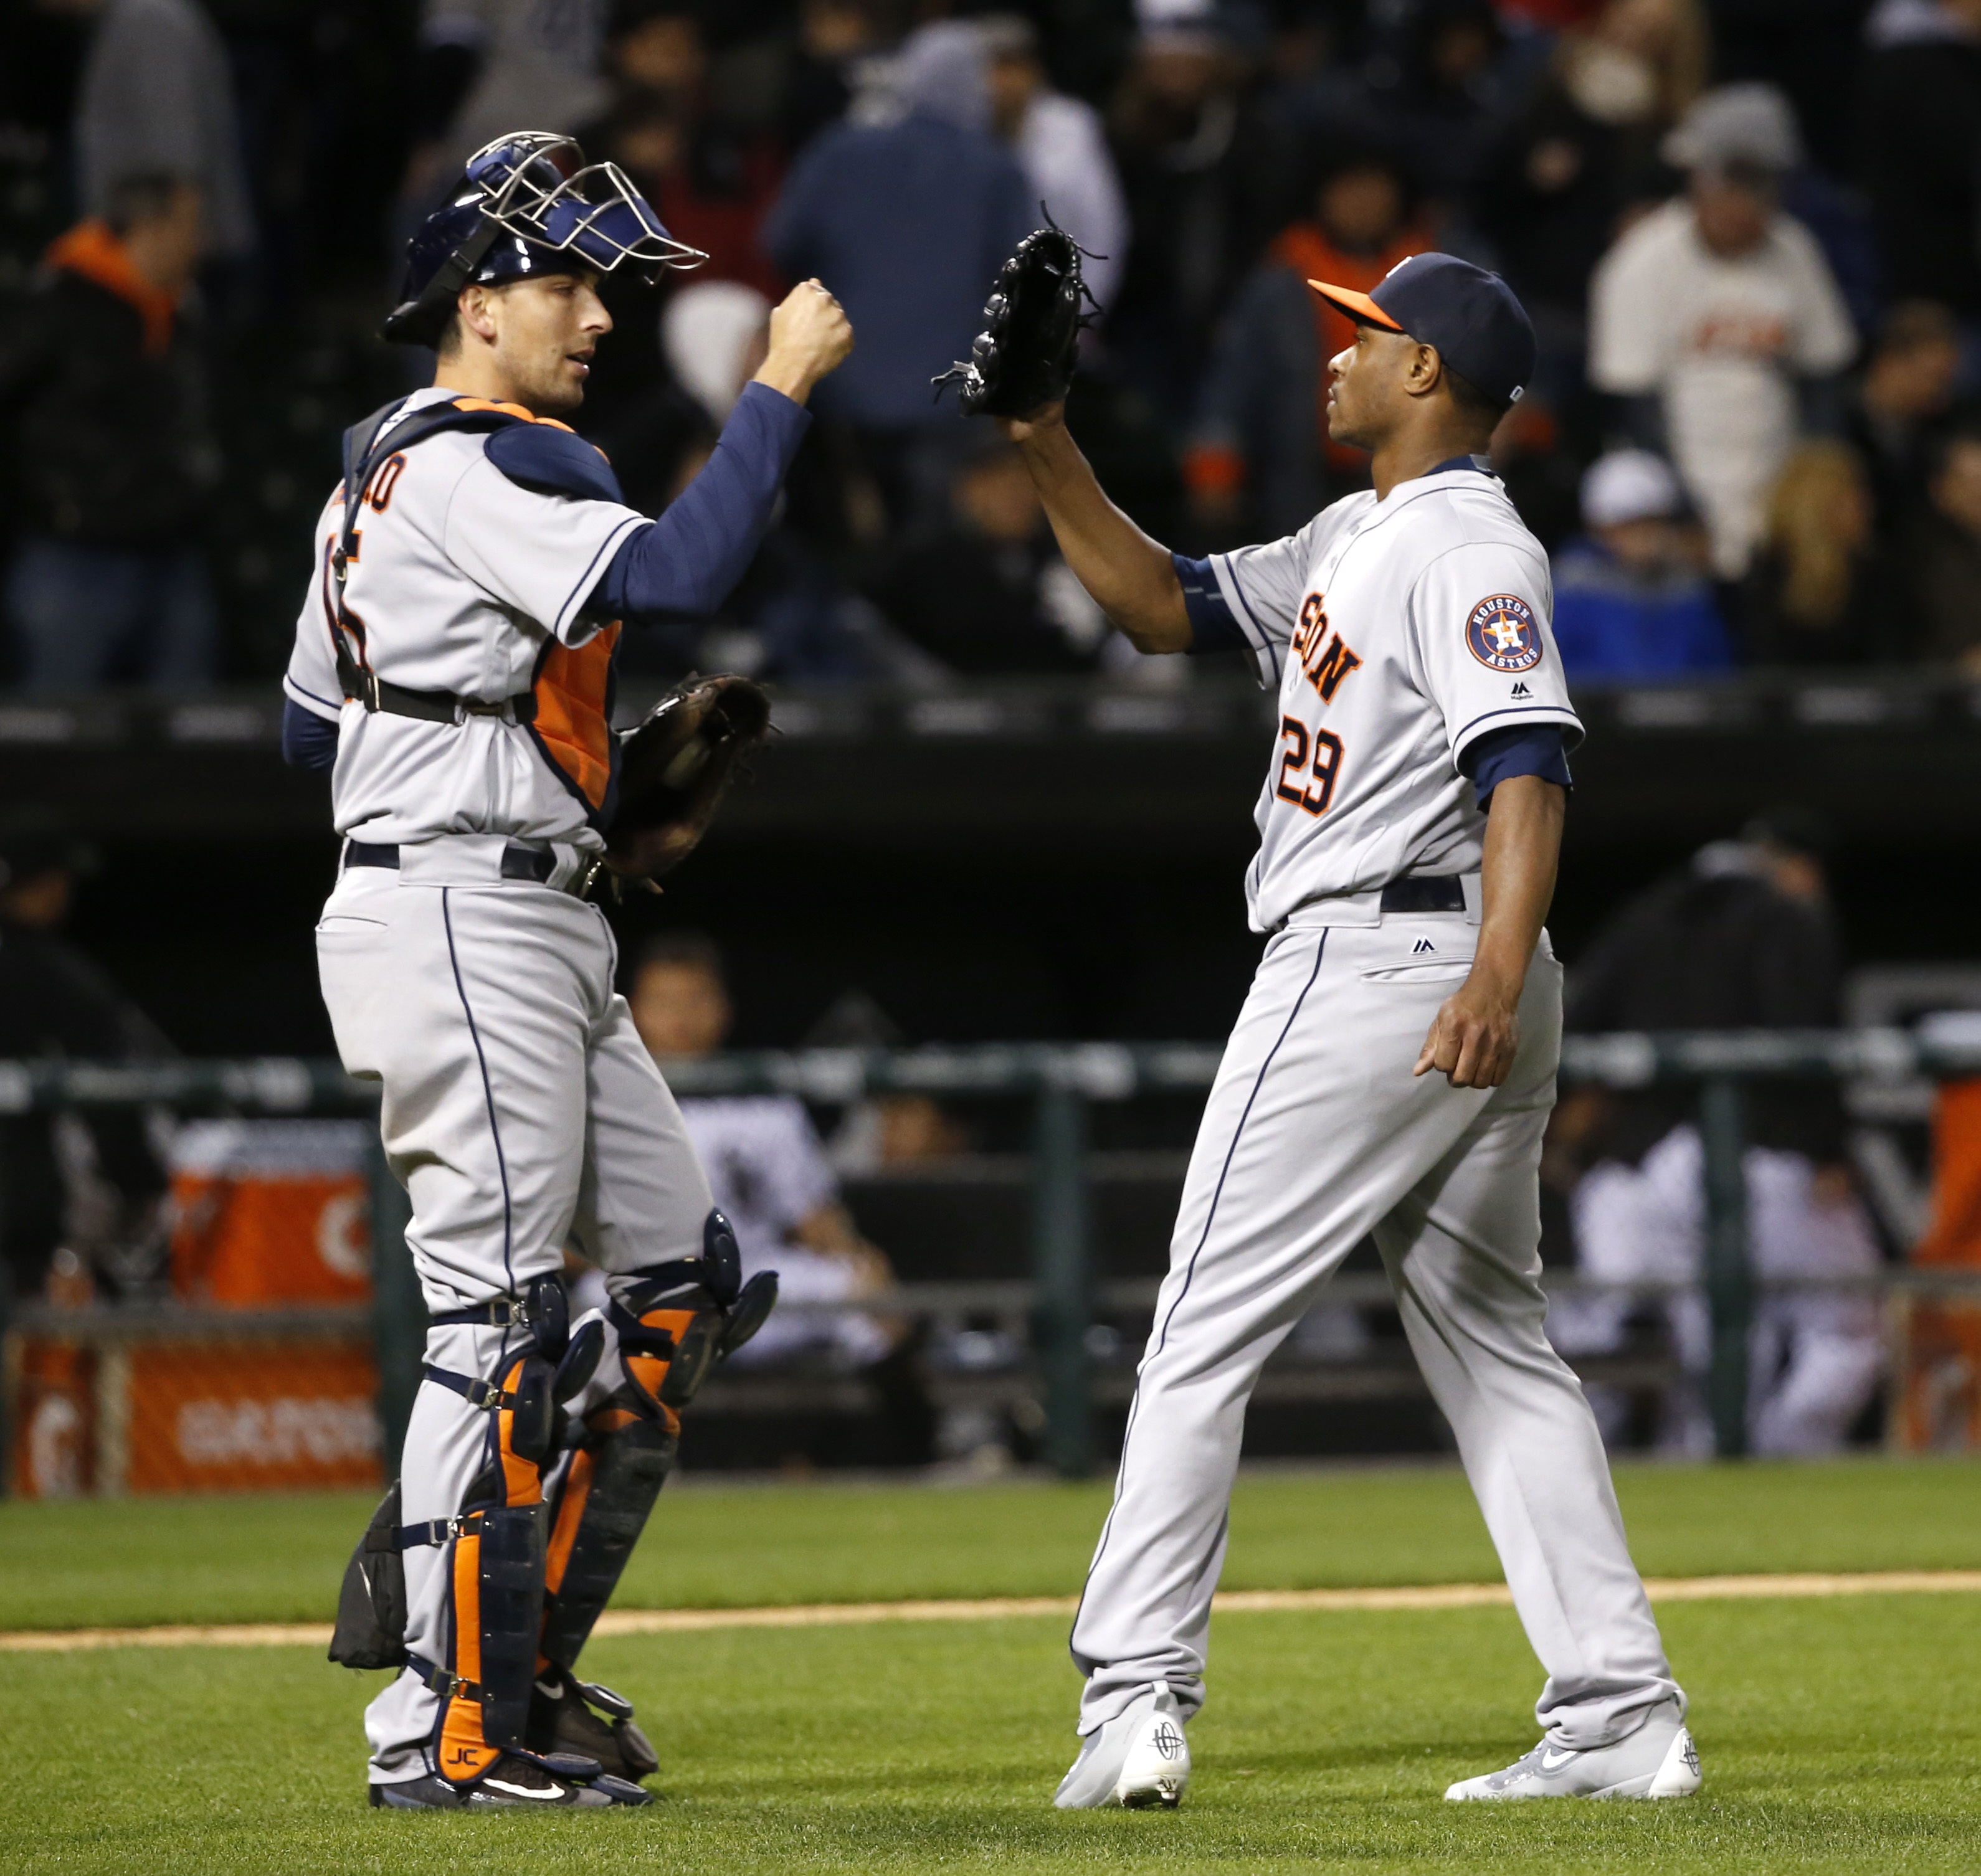 Houston Astros catcher Jason Castro, left, and relief pitcher Tony Sipp celebrate the Astros' 6-5 win over the Chicago White Sox in 11 innings in a baseball game Tuesday, May 17, 2016, in Chicago. (AP Photo/Charles Rex Arbogast)